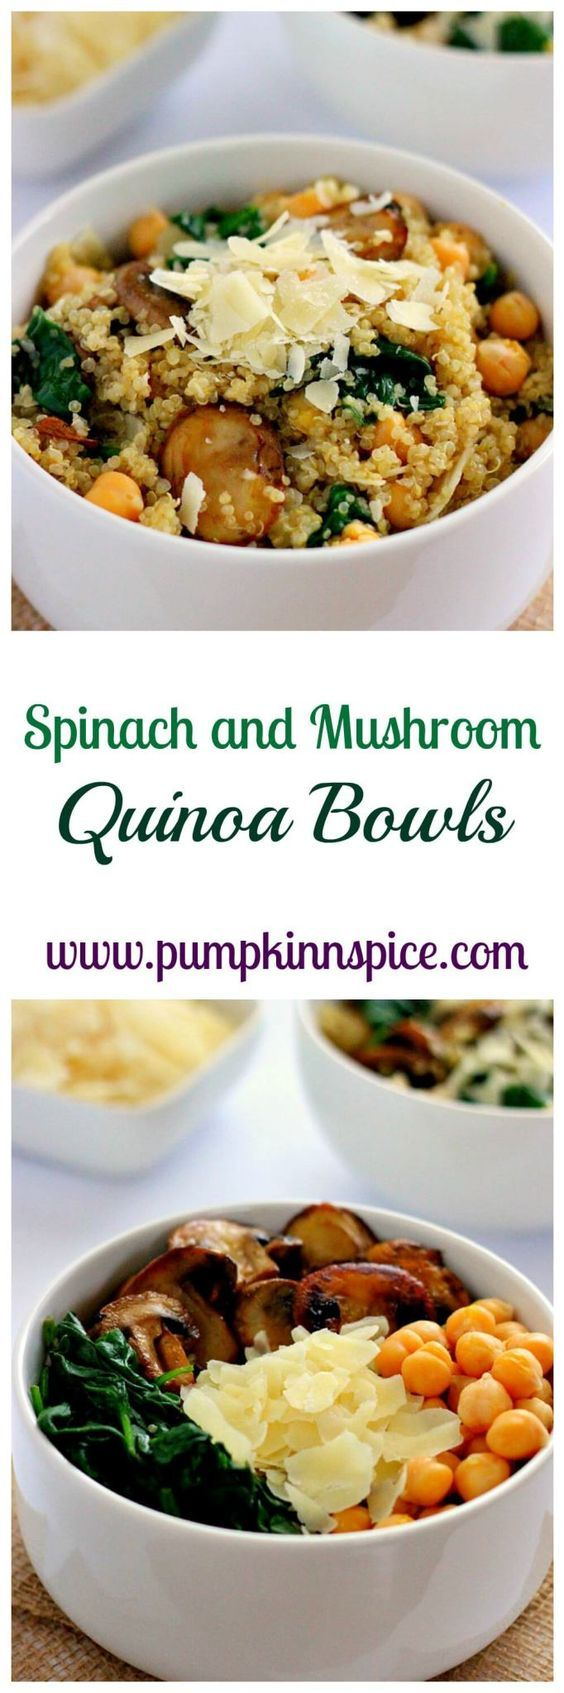 cool Spinach and Mushroom Quinoa Bowls